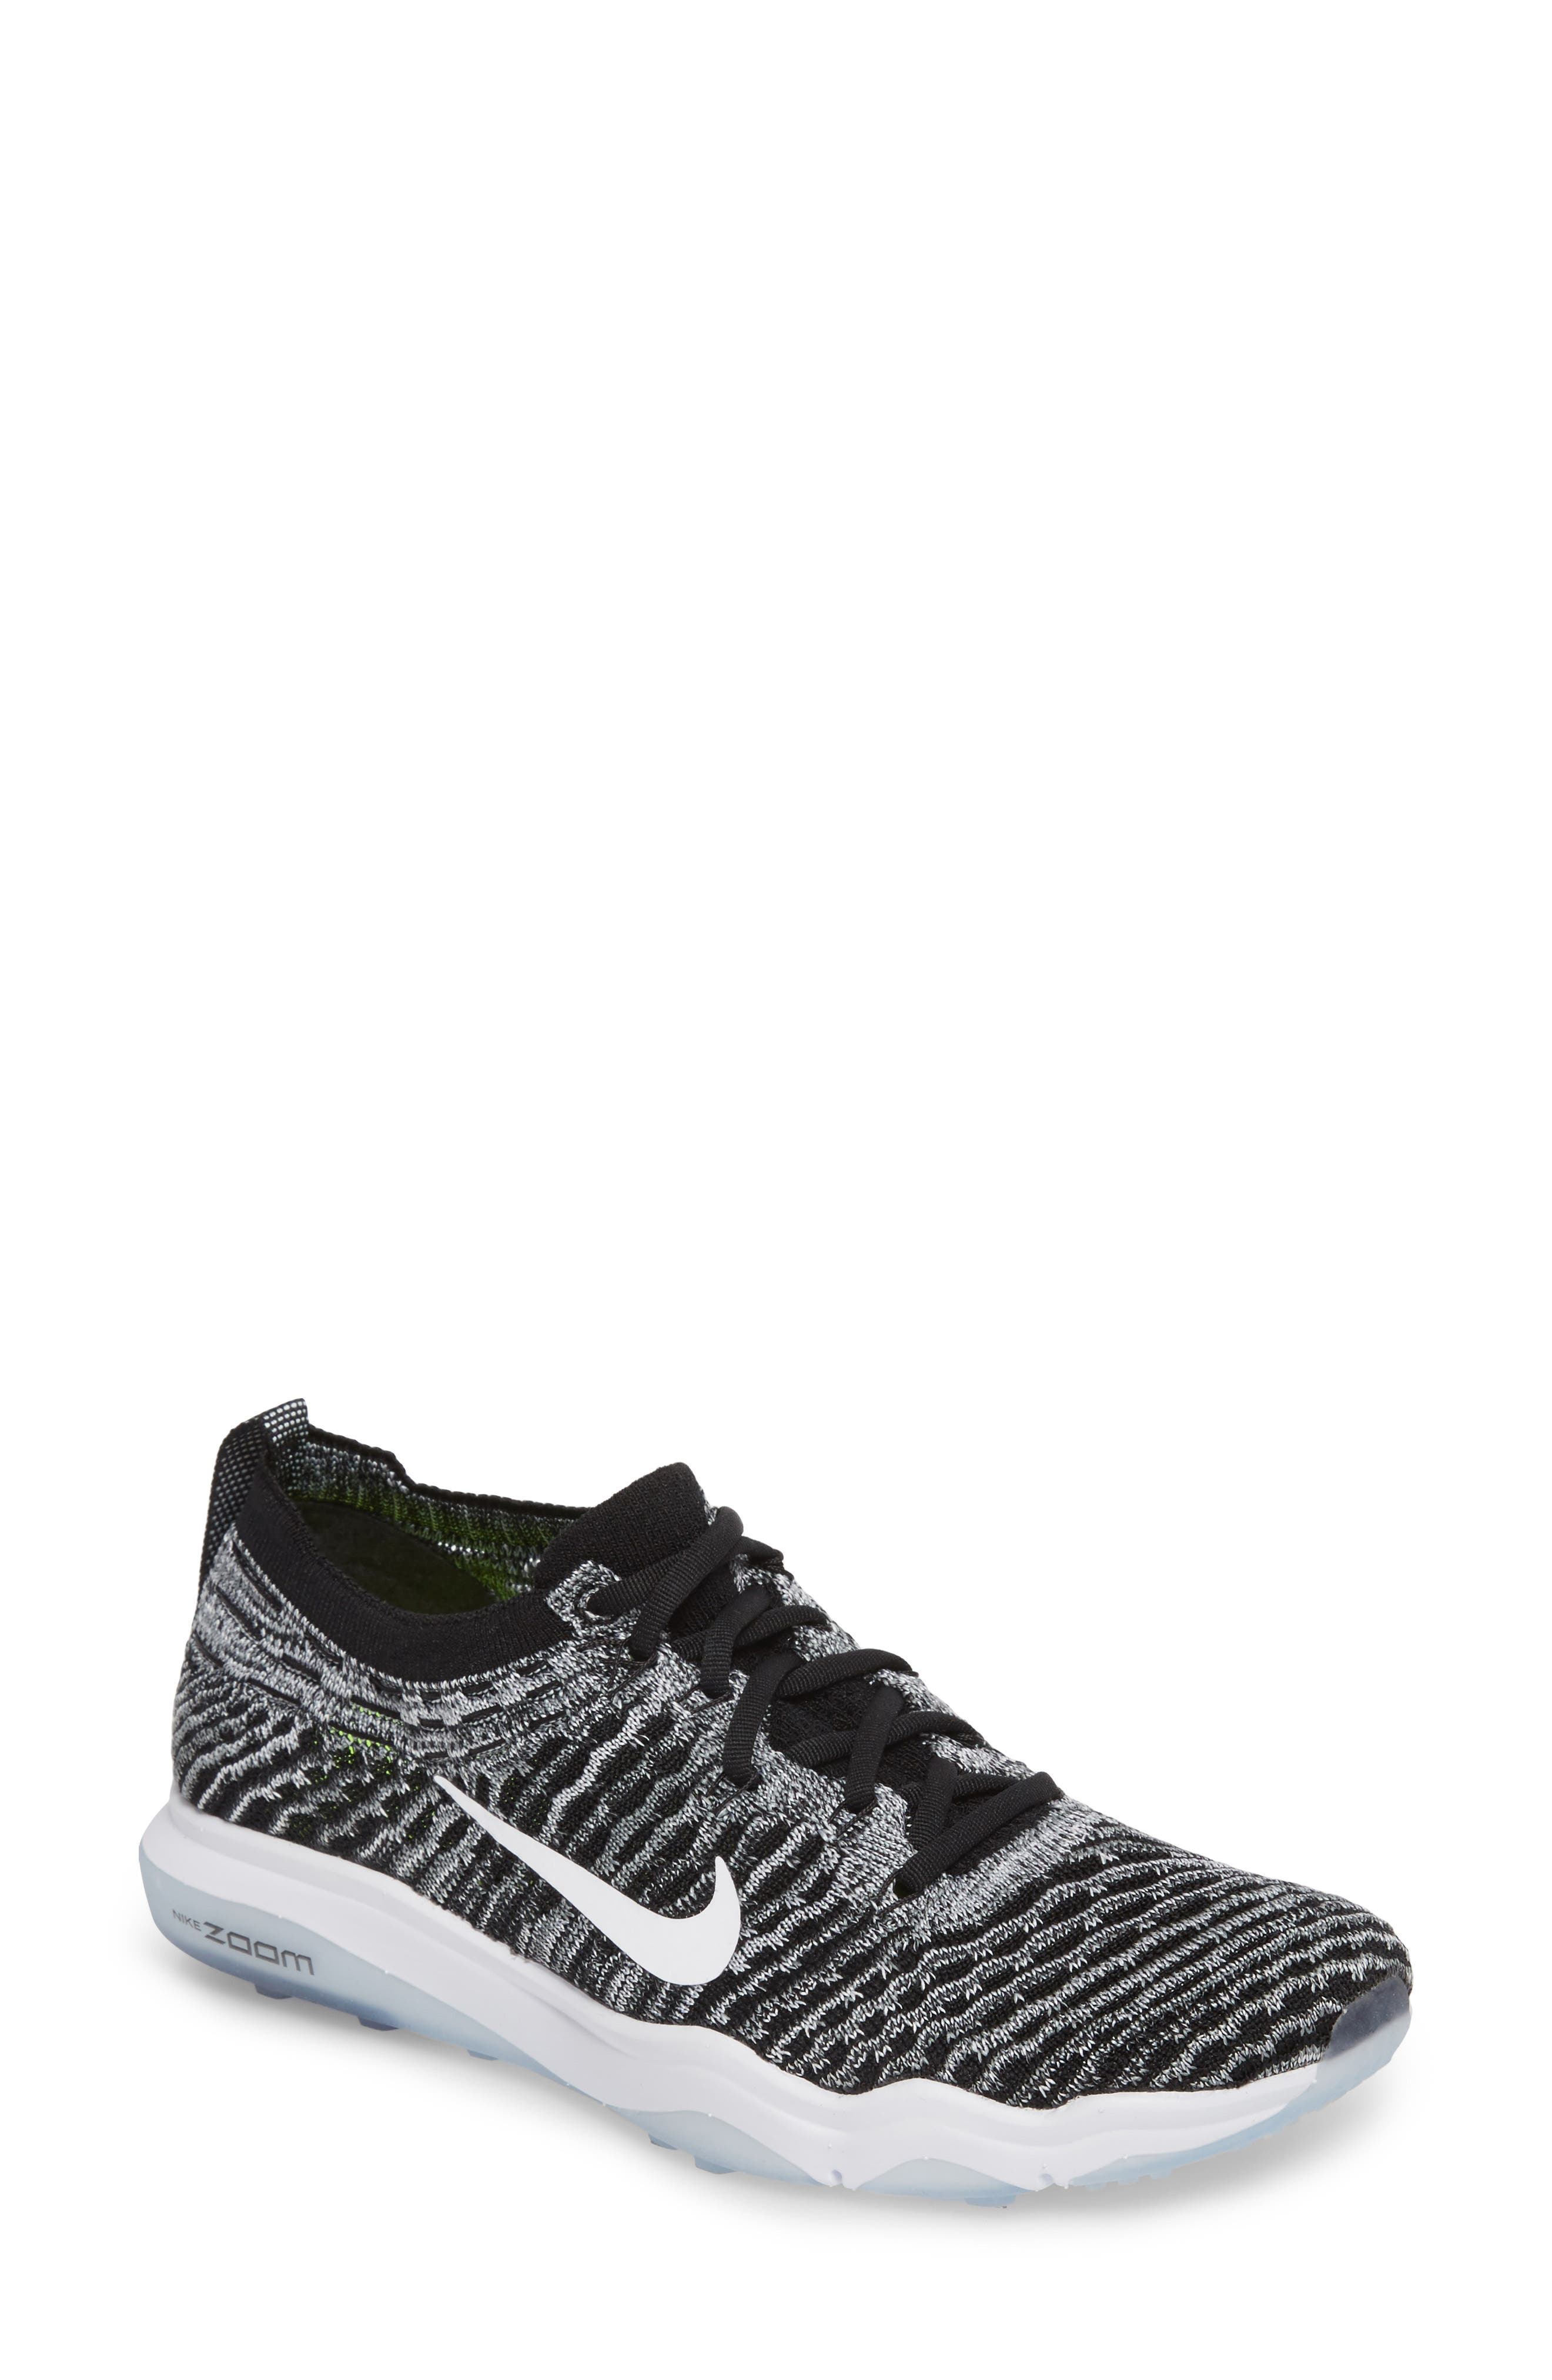 Air Zoom Fearless Flyknit Lux Training Shoe,                         Main,                         color, Black/ White